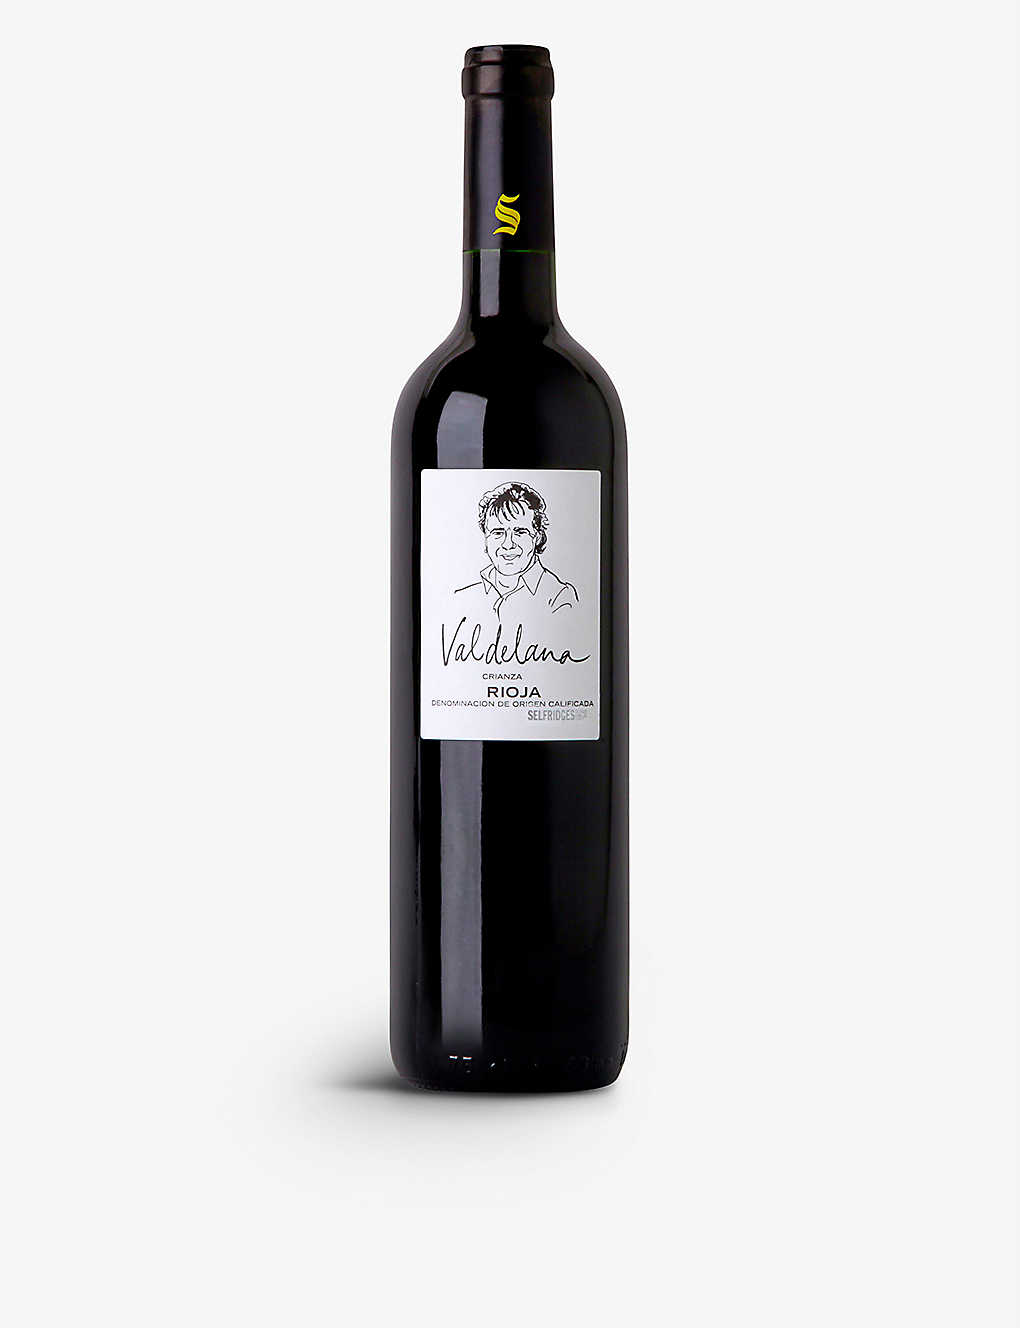 SELFRIDGES SELECTION: Rioja Crianza Bodegas Valdelana 750ml